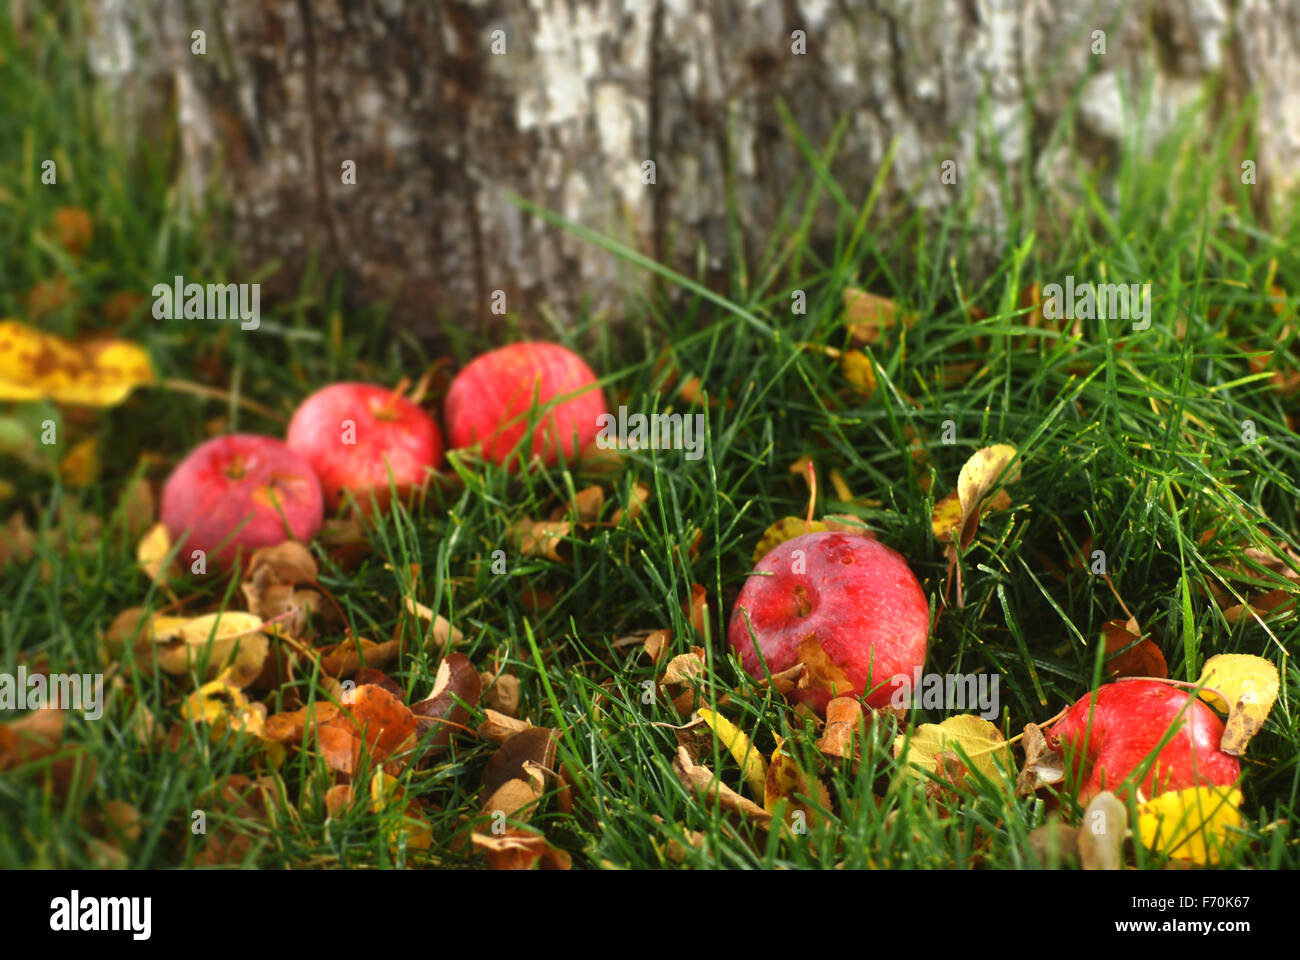 Old fallen apples  by an apple tree on autumn leaf covered grass Stock Photo